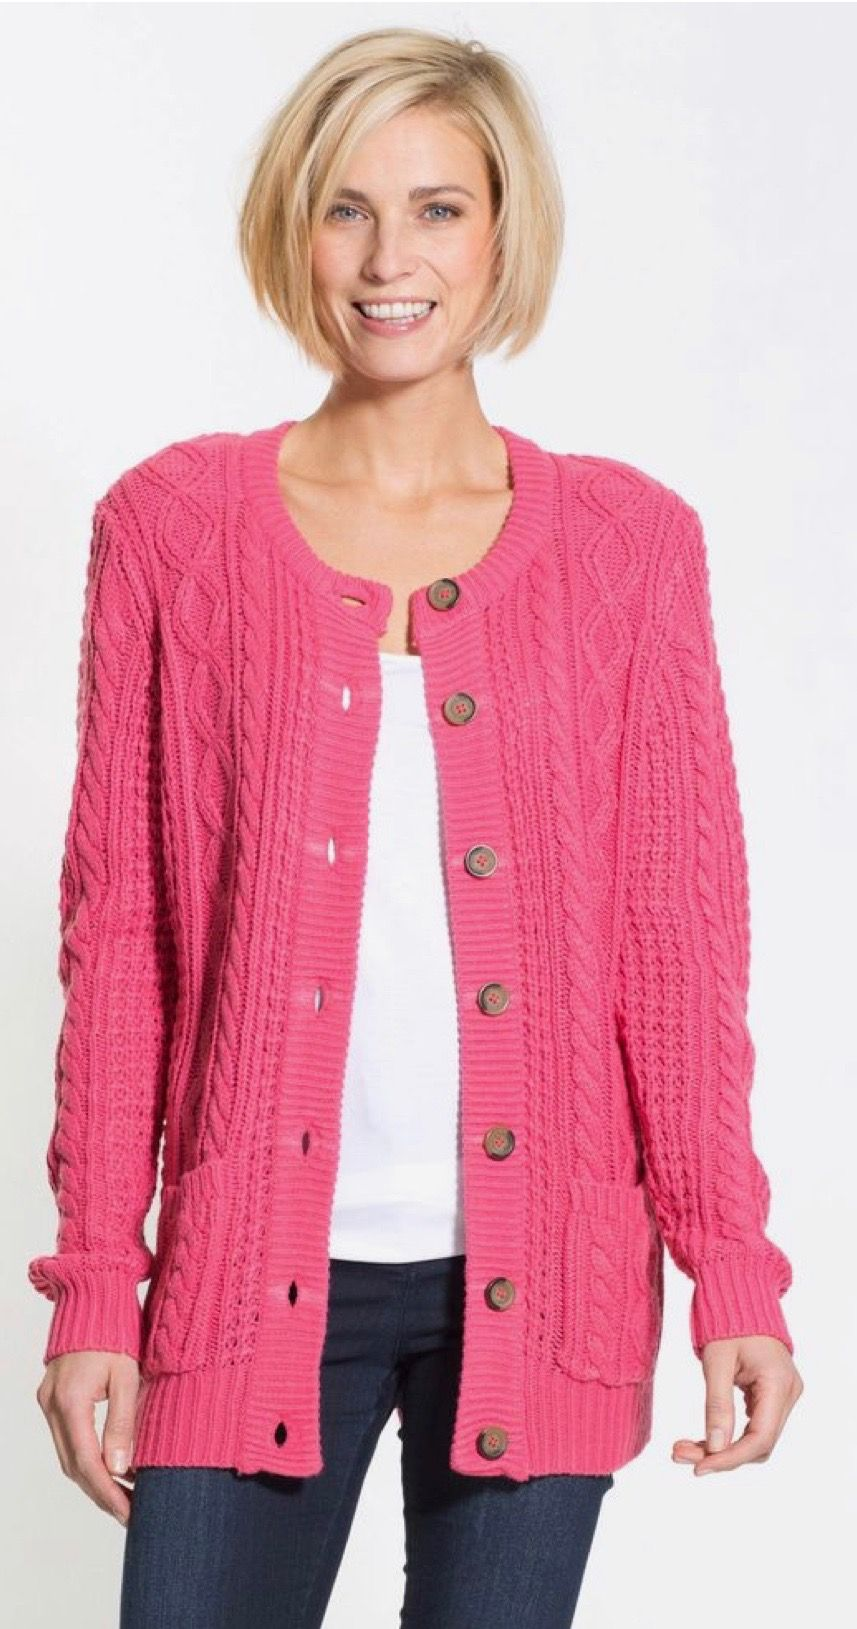 Pin by Sergio on Traditional Cardigans   Cardigan, Cable